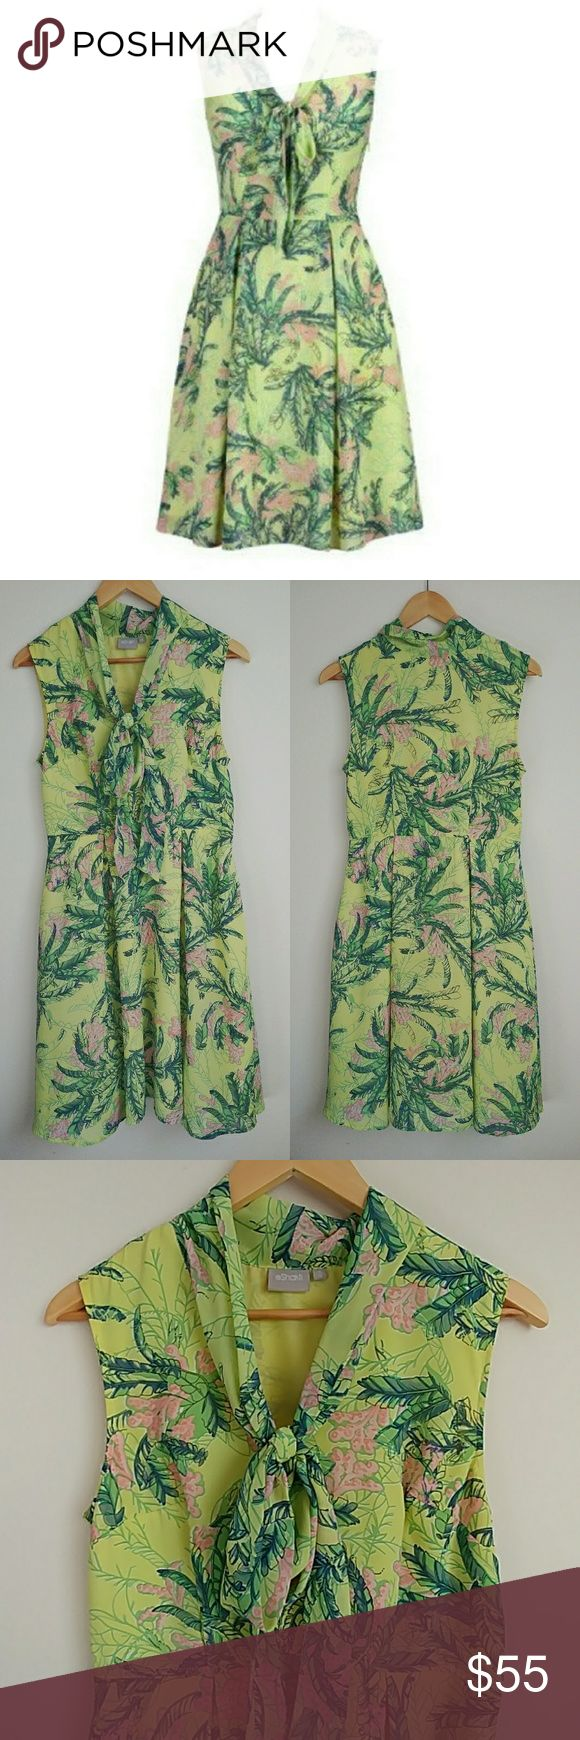 """Eshakti Banana Leaf Palm Tie Neck Dress This dress gives a tropical flair to modest secretary style! One of my absolute favorites. Worn a handful of times. Still looks like new! Generous necktie you can tie any style you want! A-line skirt with flattering pleats. Sleeveless. Knee length. Vibrant palm leaves & flowers print. POCKETS! Invisible side zip. Fully lined. Just waiting for a cardigan topper to rock this season! Length: 39"""" Waist: 30"""" Bust: 35"""" Material does not stretch. 100%…"""